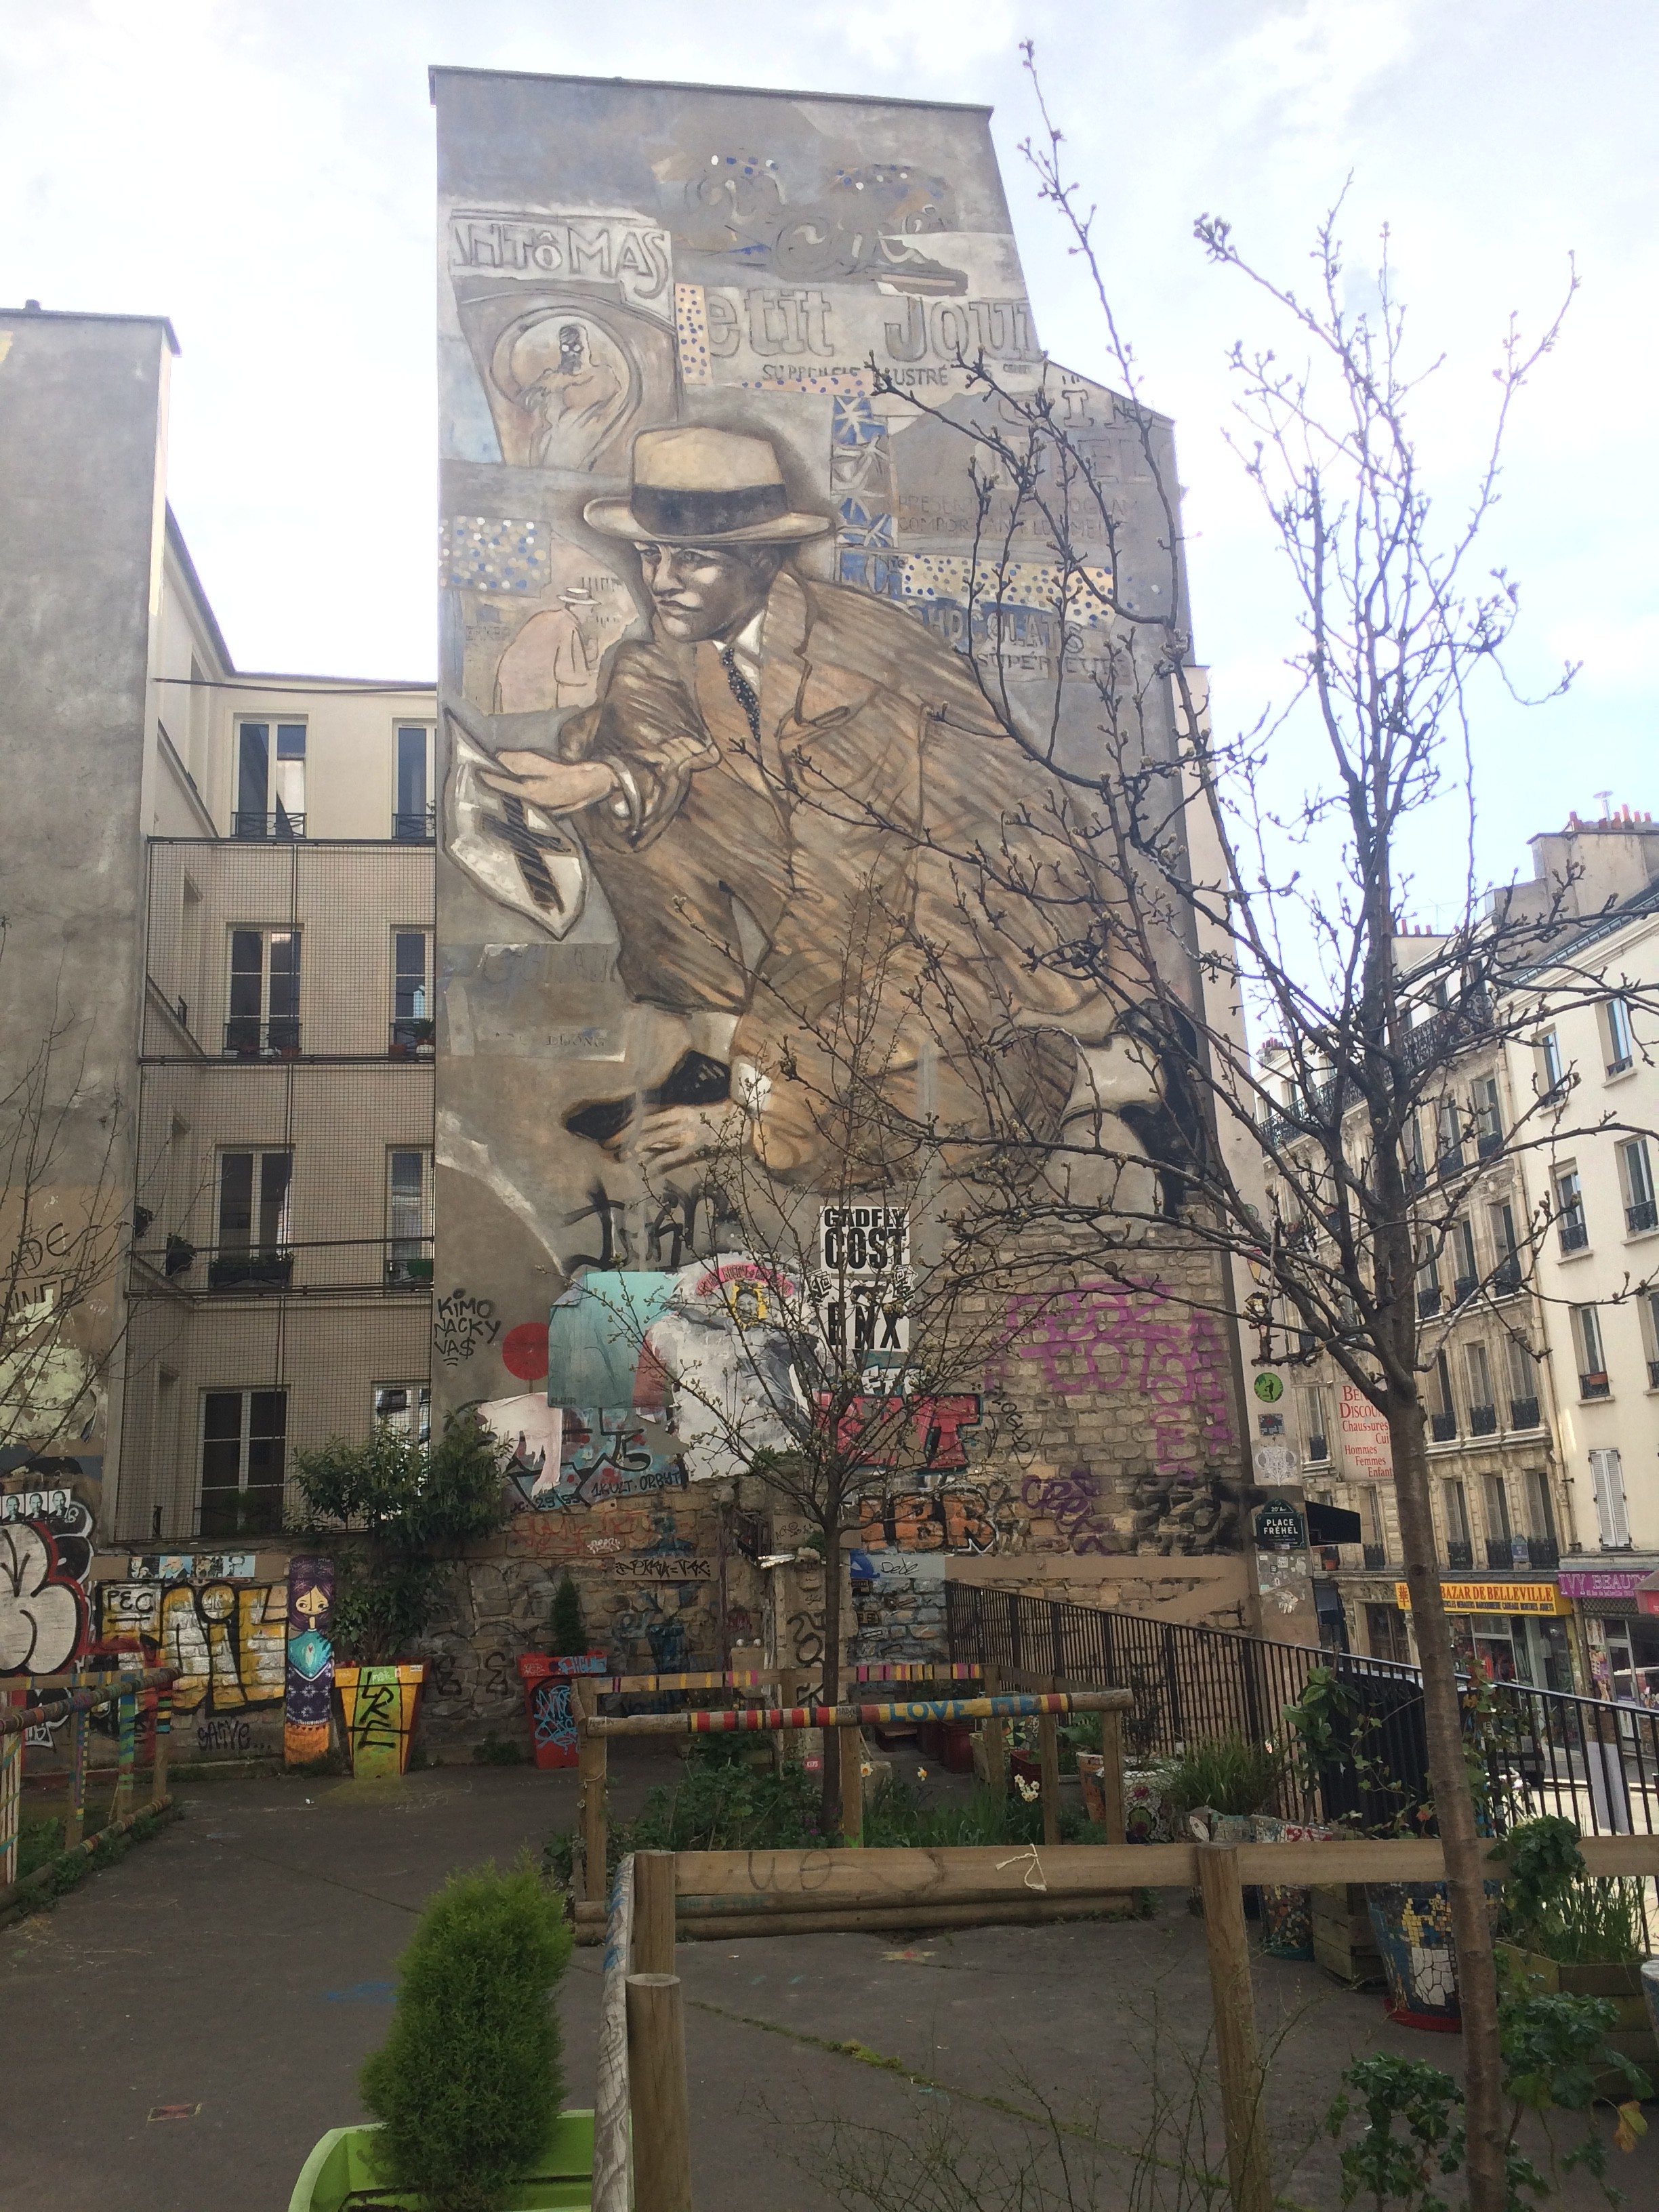 Jean le Gac street art in Belleville, Paris